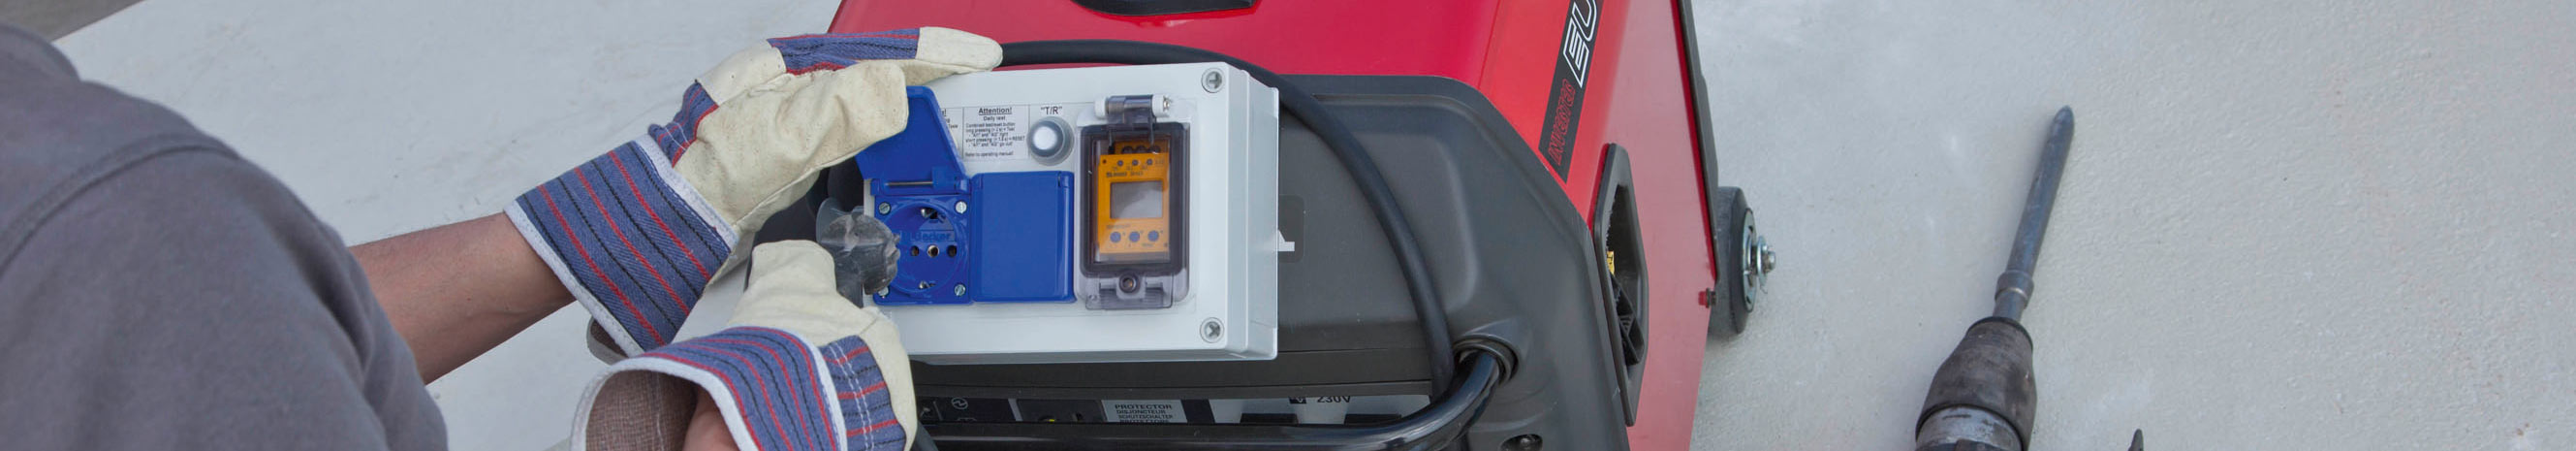 Portable mobile power generators